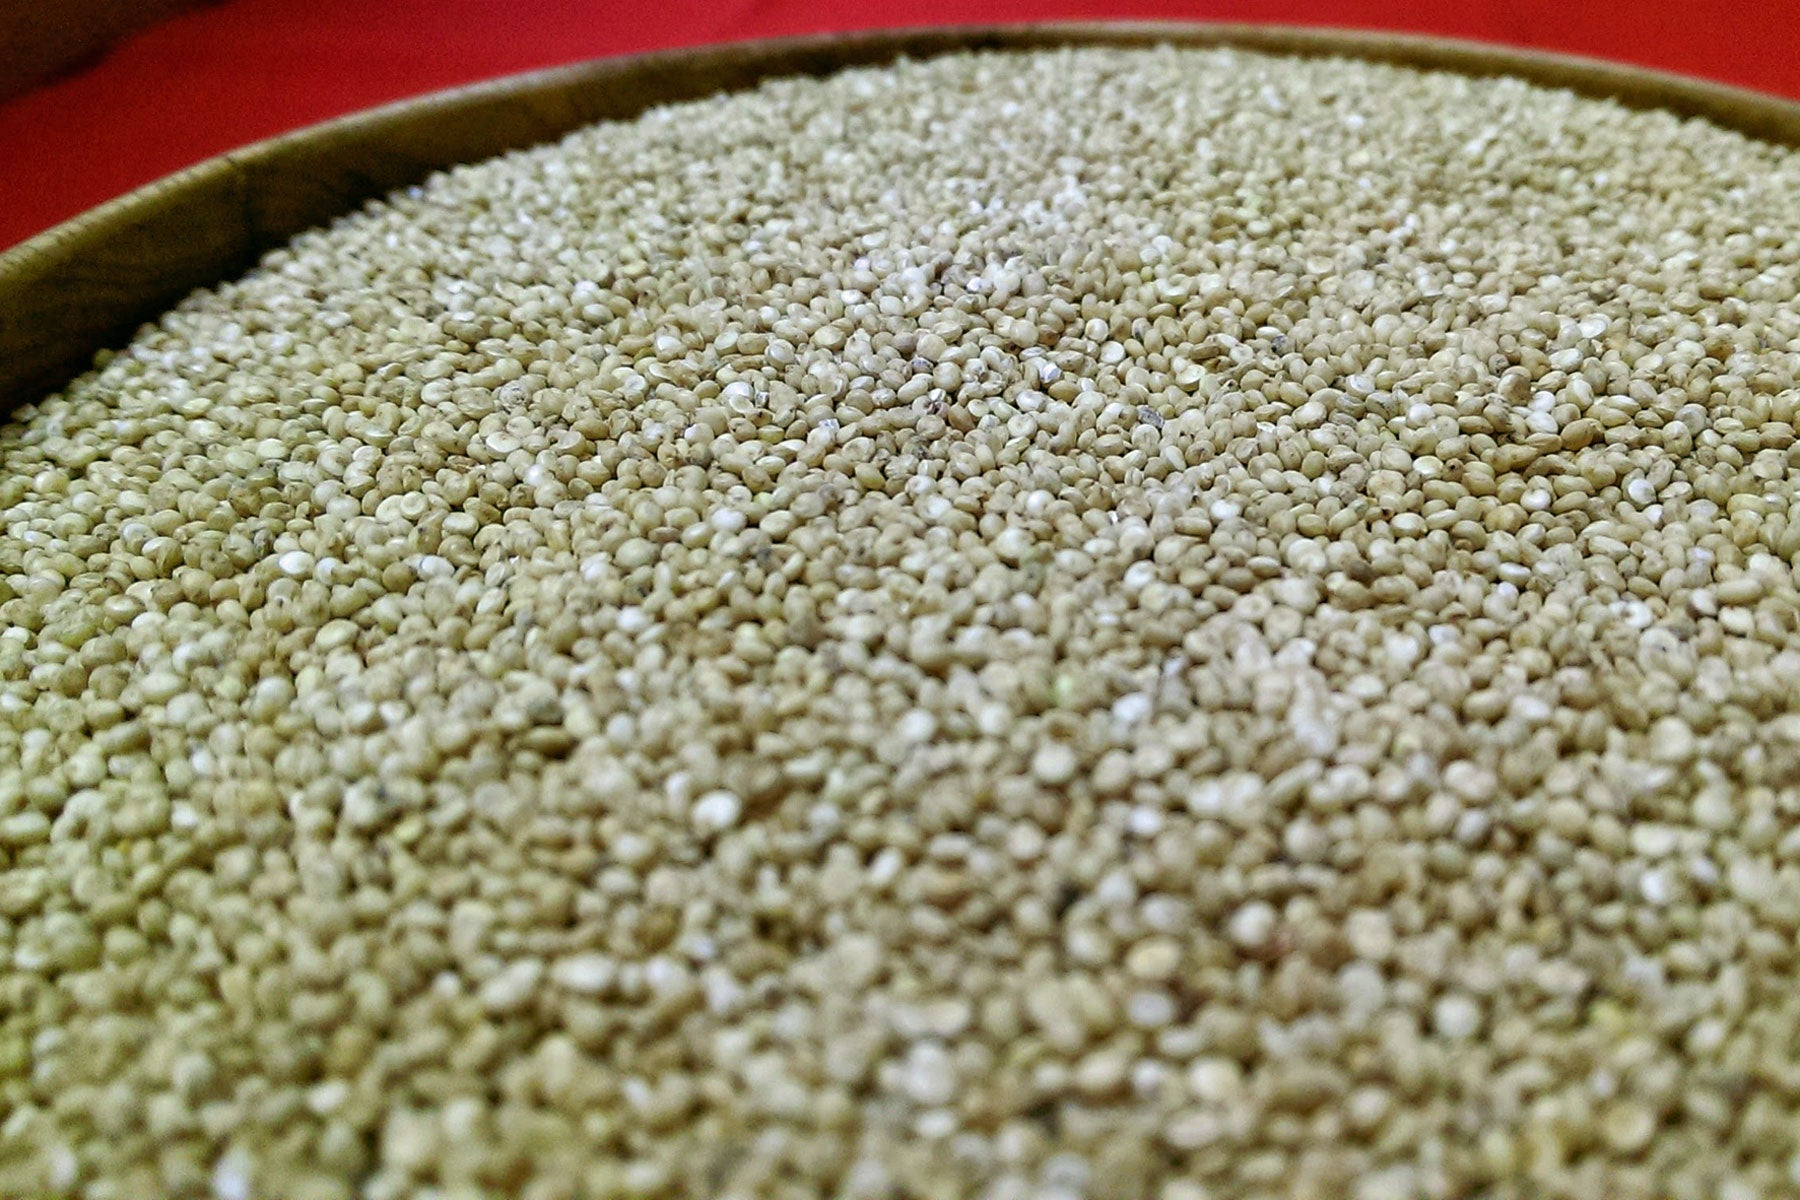 British-grown quinoa grain, ready for cooking